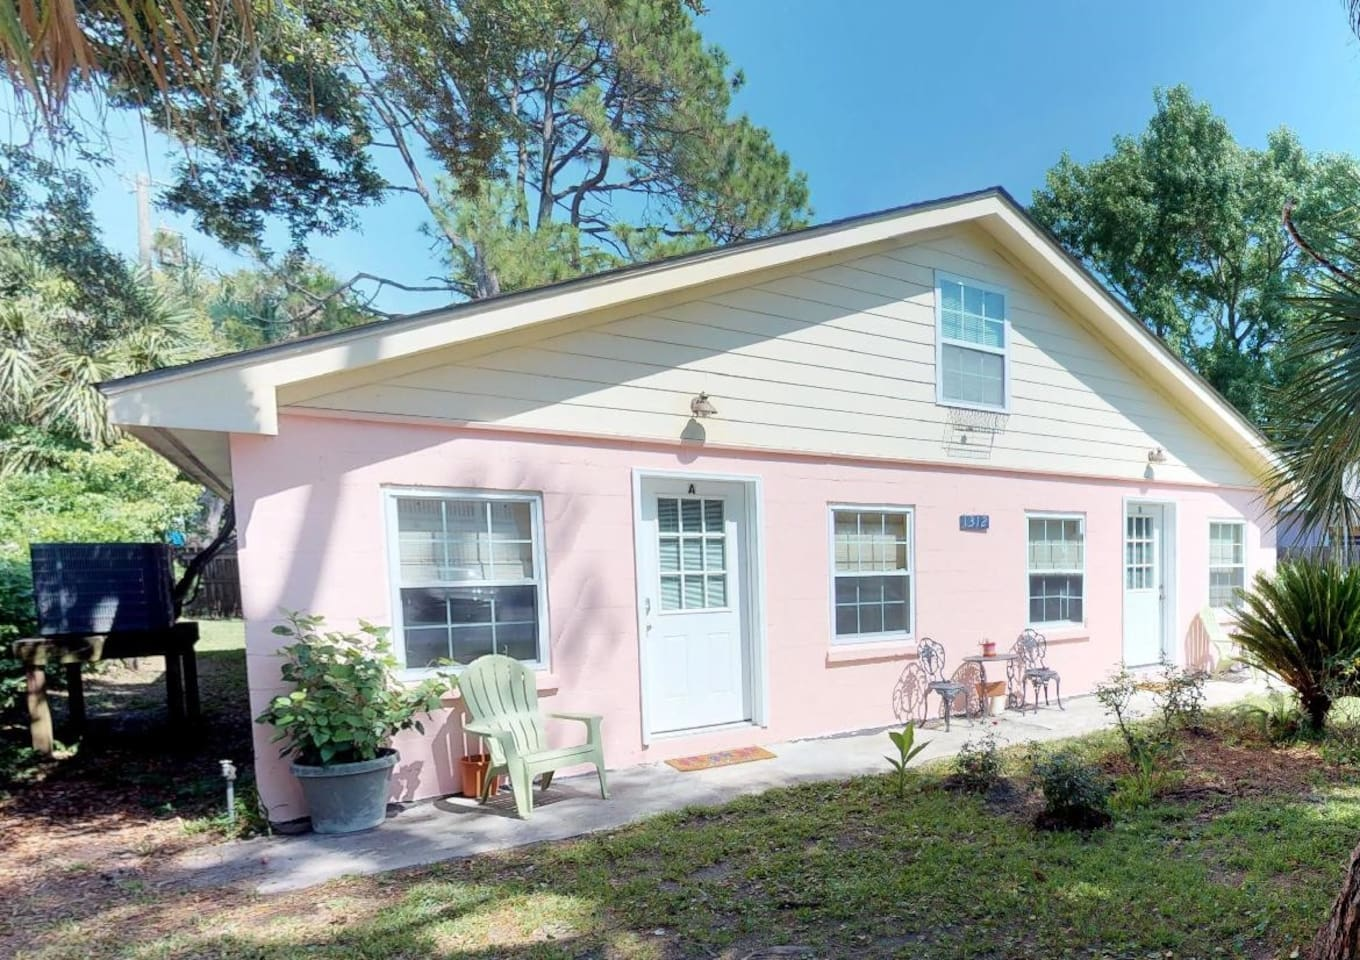 A classic Tybee cottage duplex, located mid-island, just an easy walk or bike ride to the beach, back river, restaurants, shopping, and activities. LEFT SIDE DUPLEX